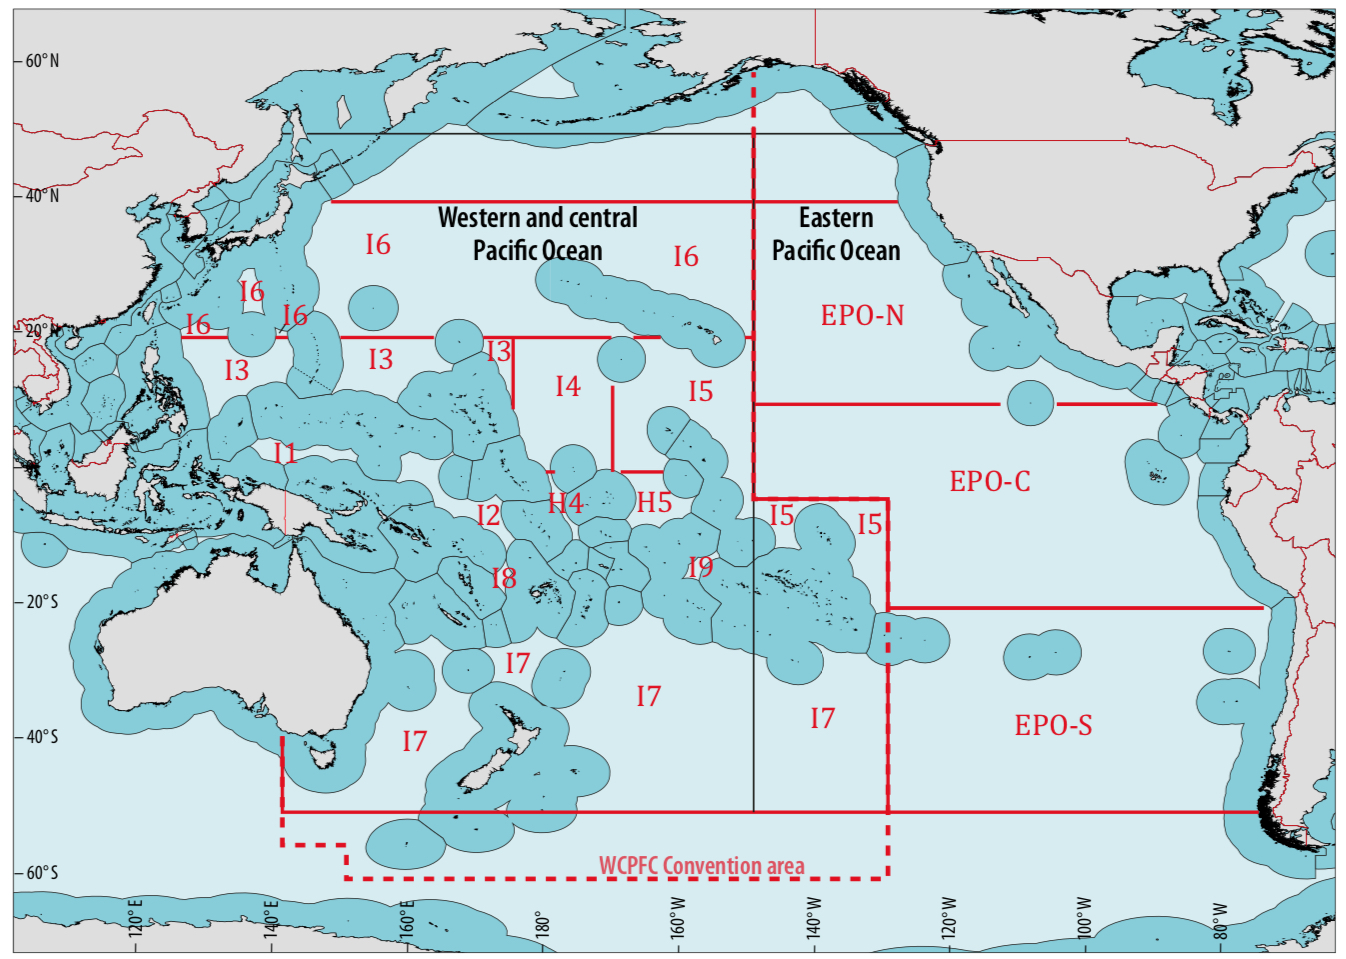 Figure 3. High-seas areas in the western and Central Pacific Ocean and eastern Pacific Ocean used to estimate changes in biomass of tuna.